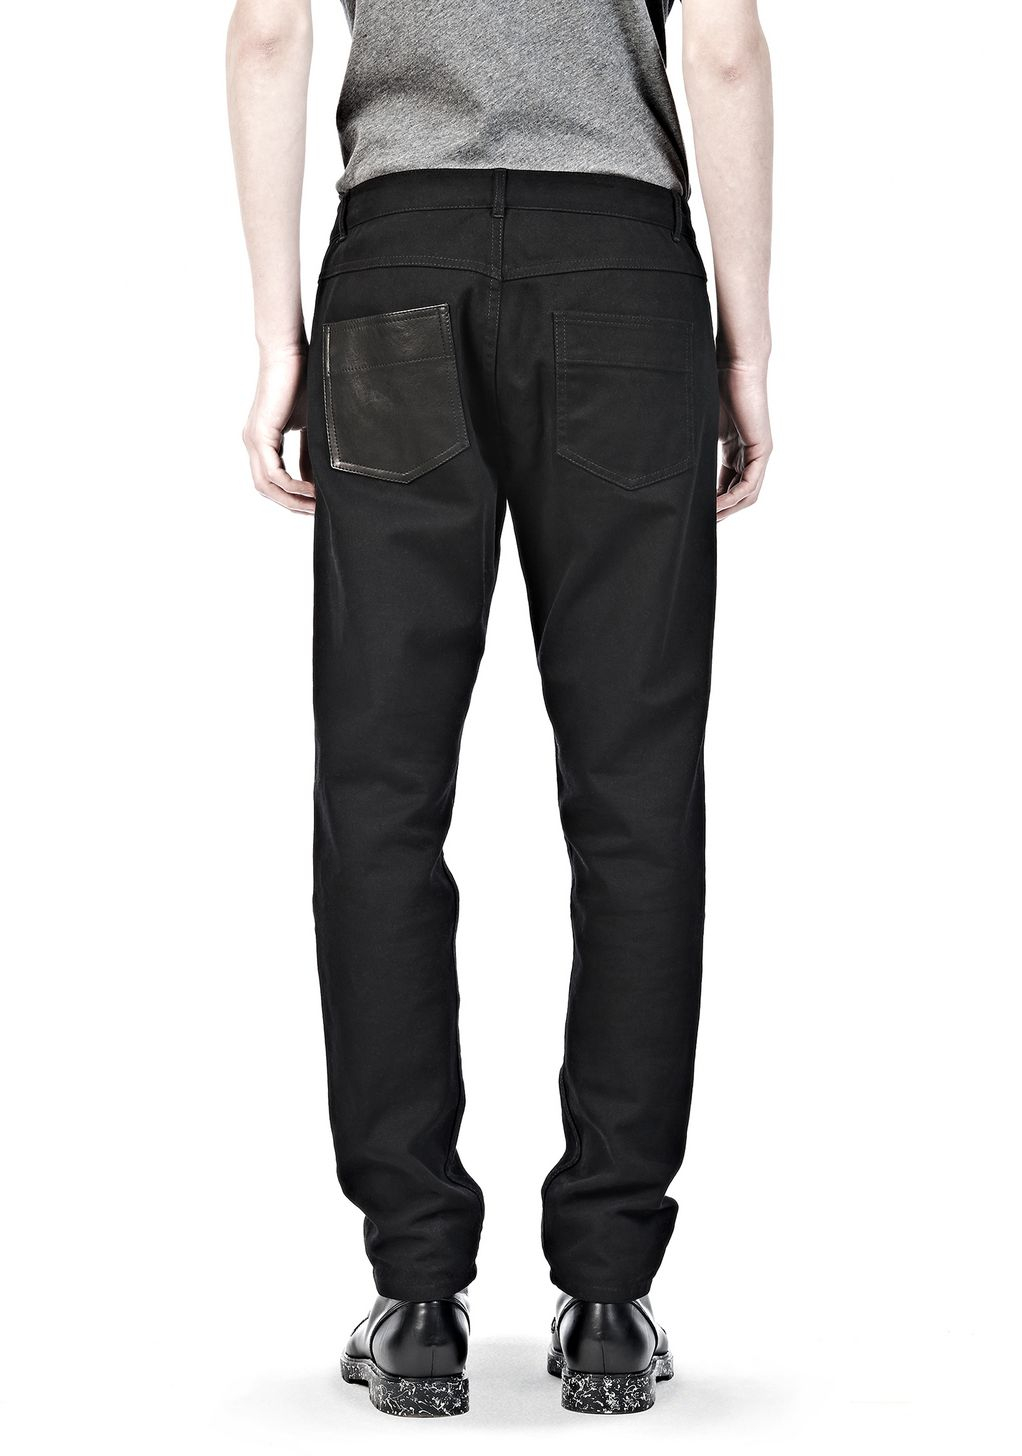 Buy low price, high quality black canvas jeans with worldwide shipping on dnxvvyut.ml